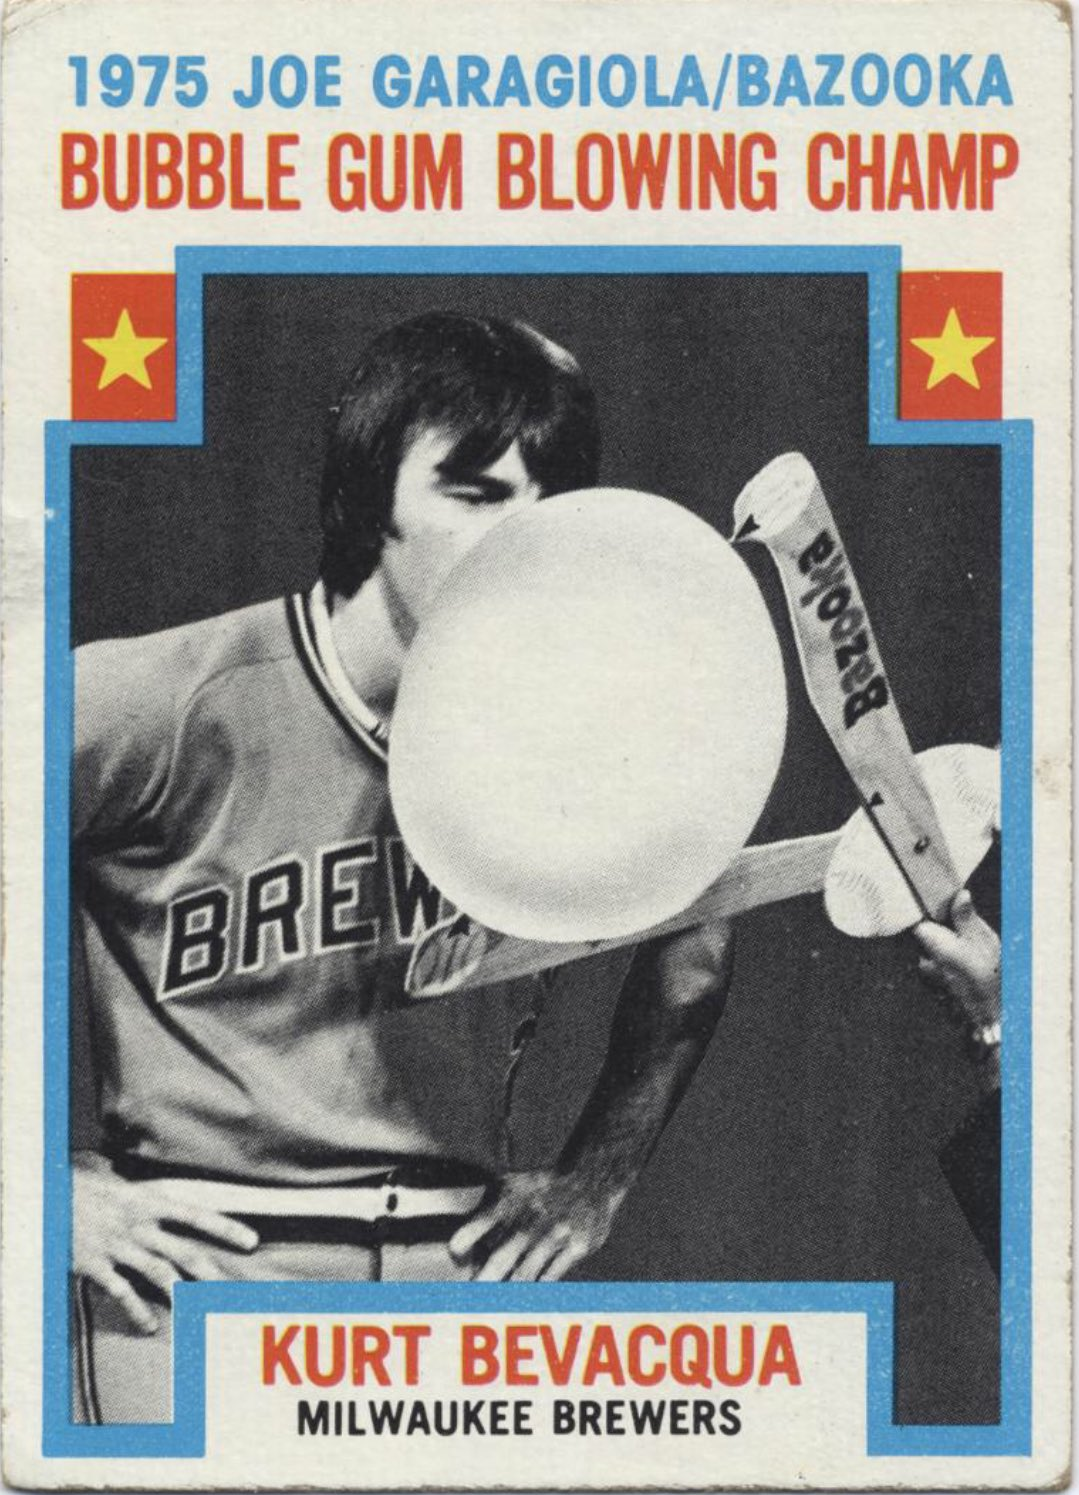 The only card that matters on #NationalChewingGumDay. Better yet, I've got the inside story on this magic moment when Kurt Bevacqua joins me on the next episode of the Super 70s Sports Podcast! https://t.co/Z2V015Uiyg